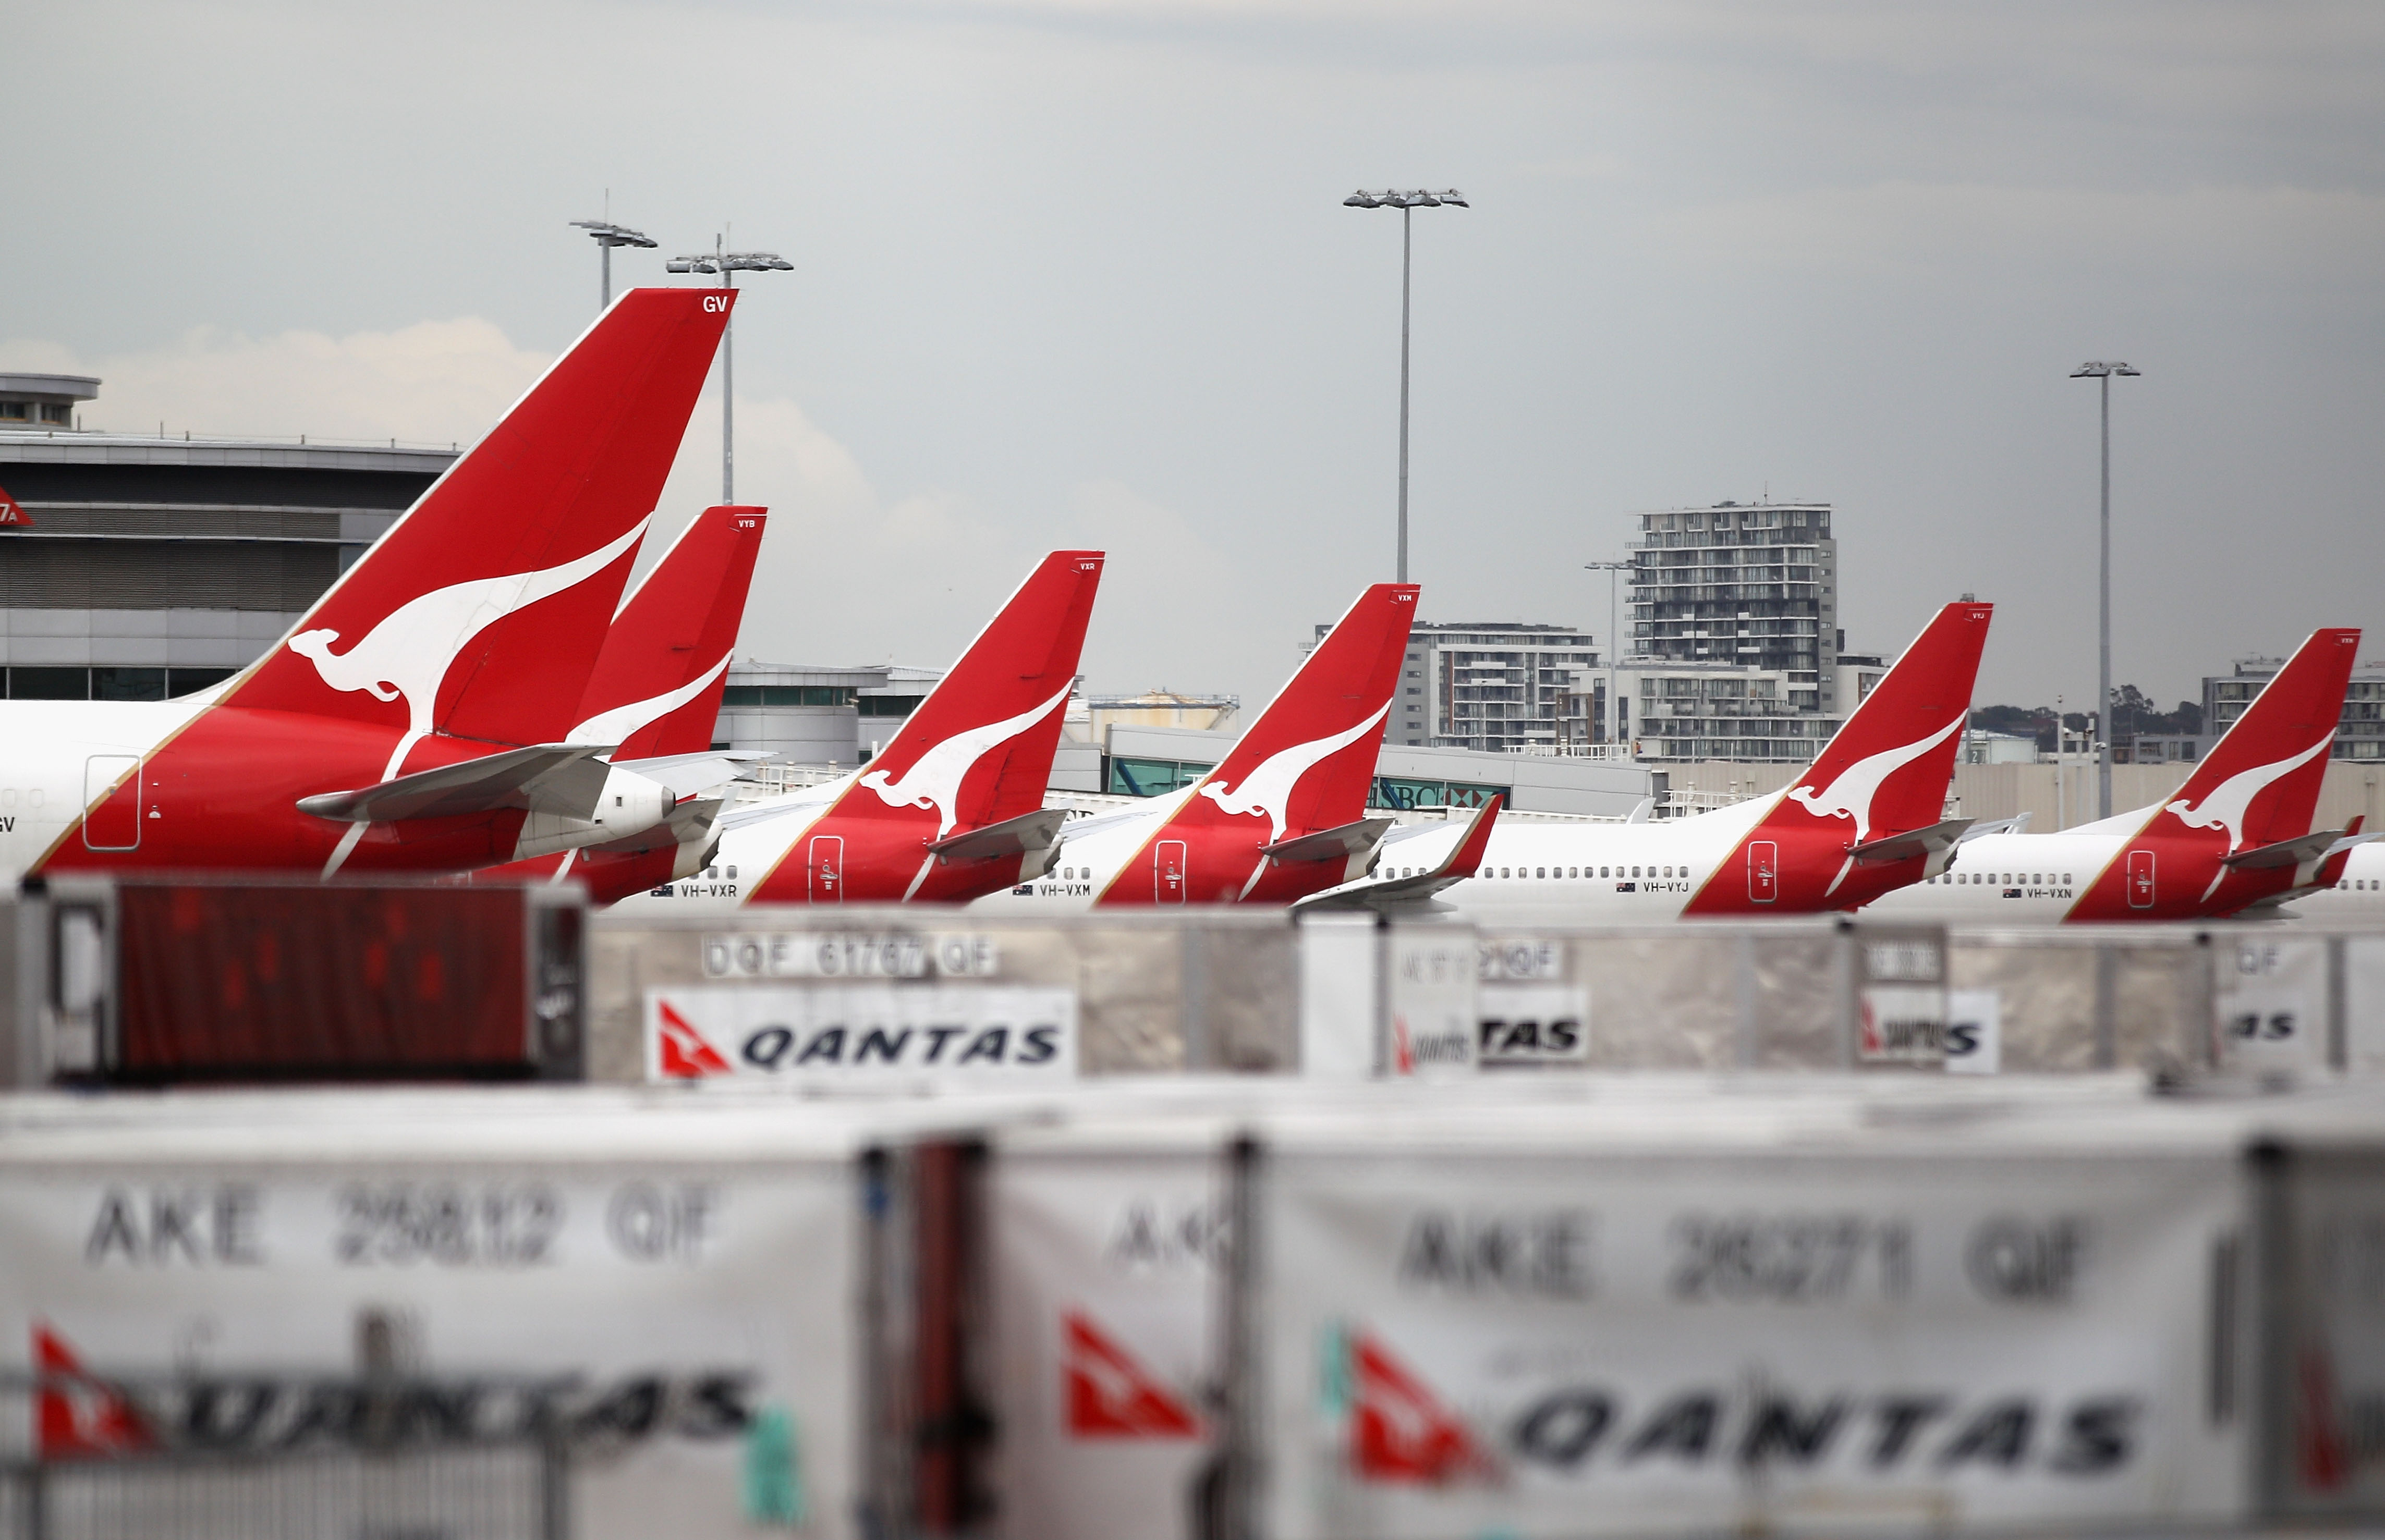 a plan for the business report qantas Business traveller reviews qantas's refreshed b767 aircraft, with all passengers now loaned ipads for streaming in-flight entertainment content free of charge read more.